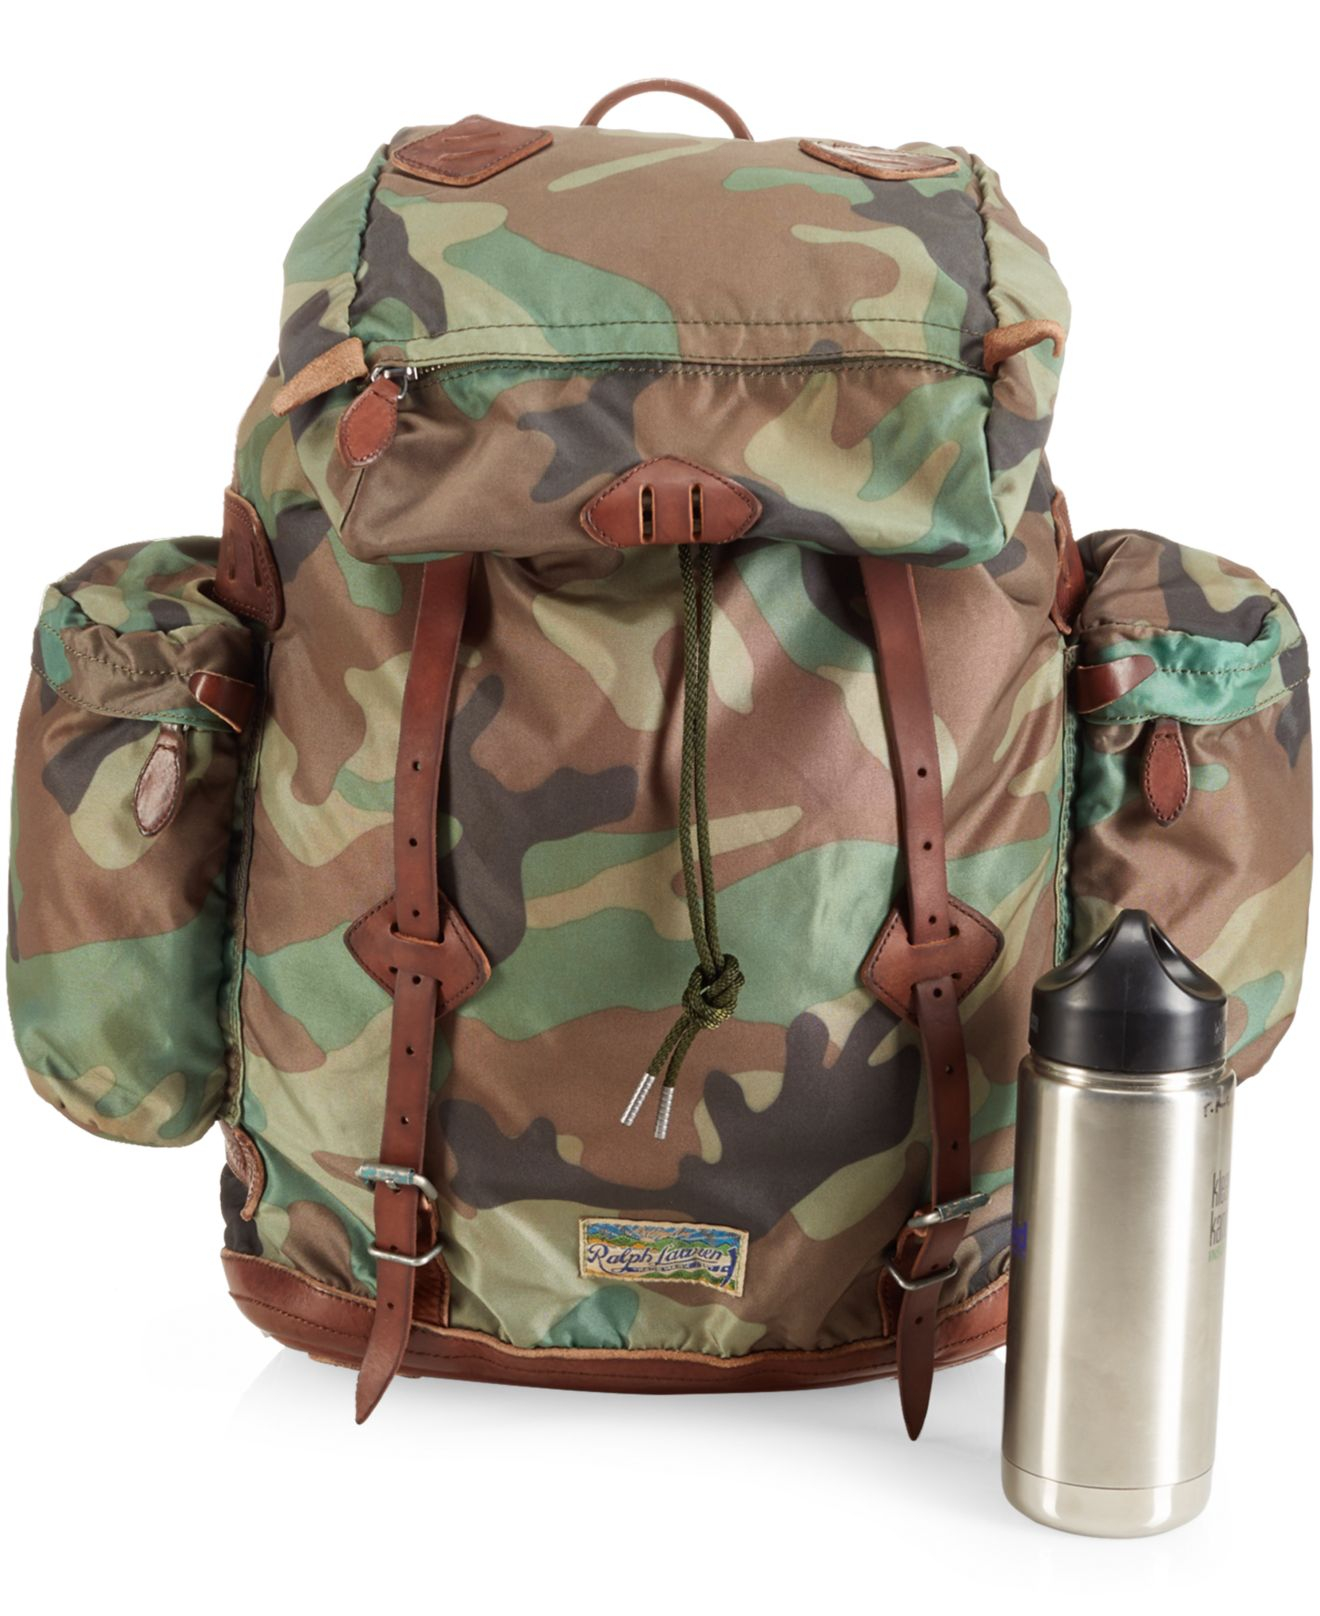 261446a411 Lyst - Polo Ralph Lauren Yosemite Nylon Camo Backpack in Green for Men